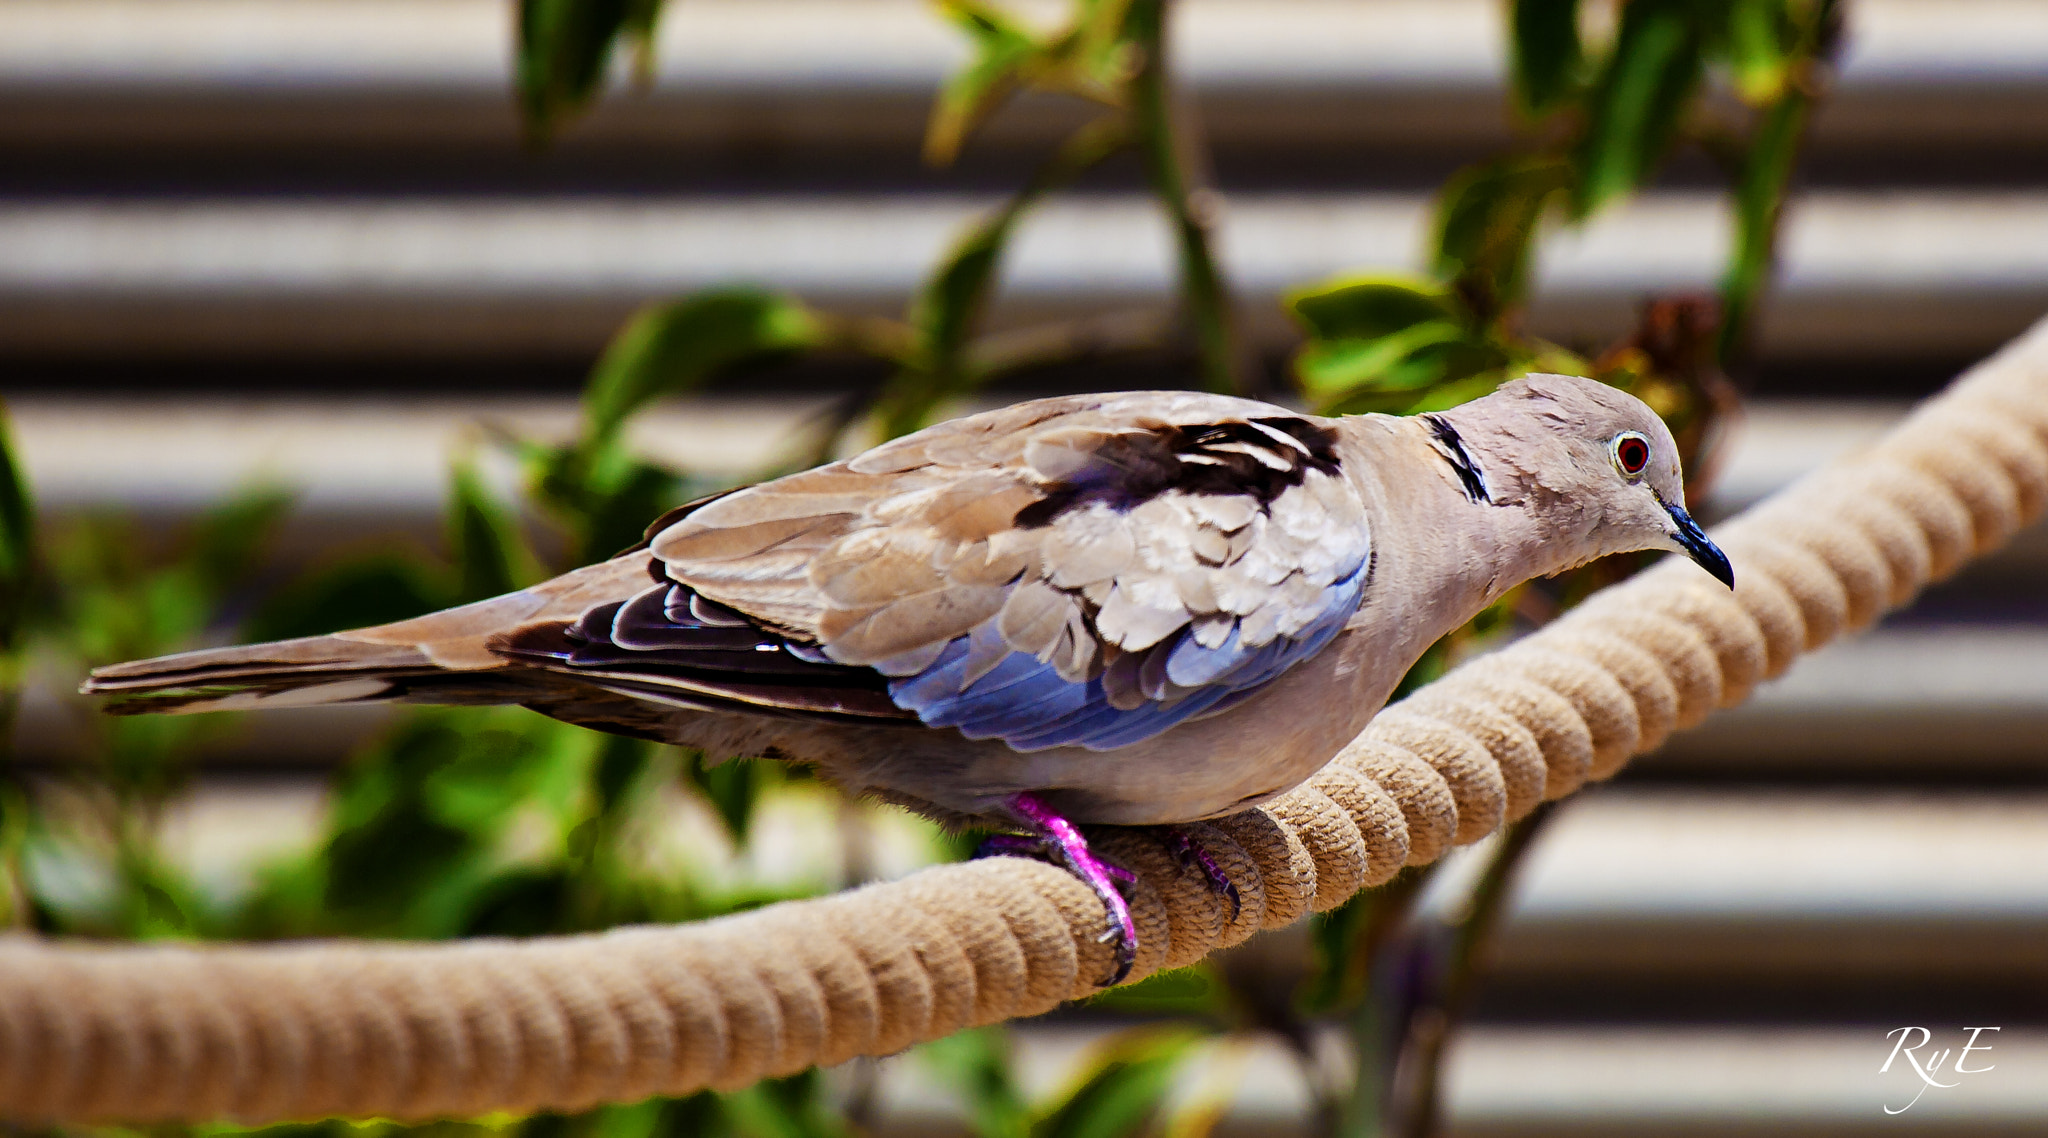 Photograph Pigeon by Jose Luis Rubianes on 500px